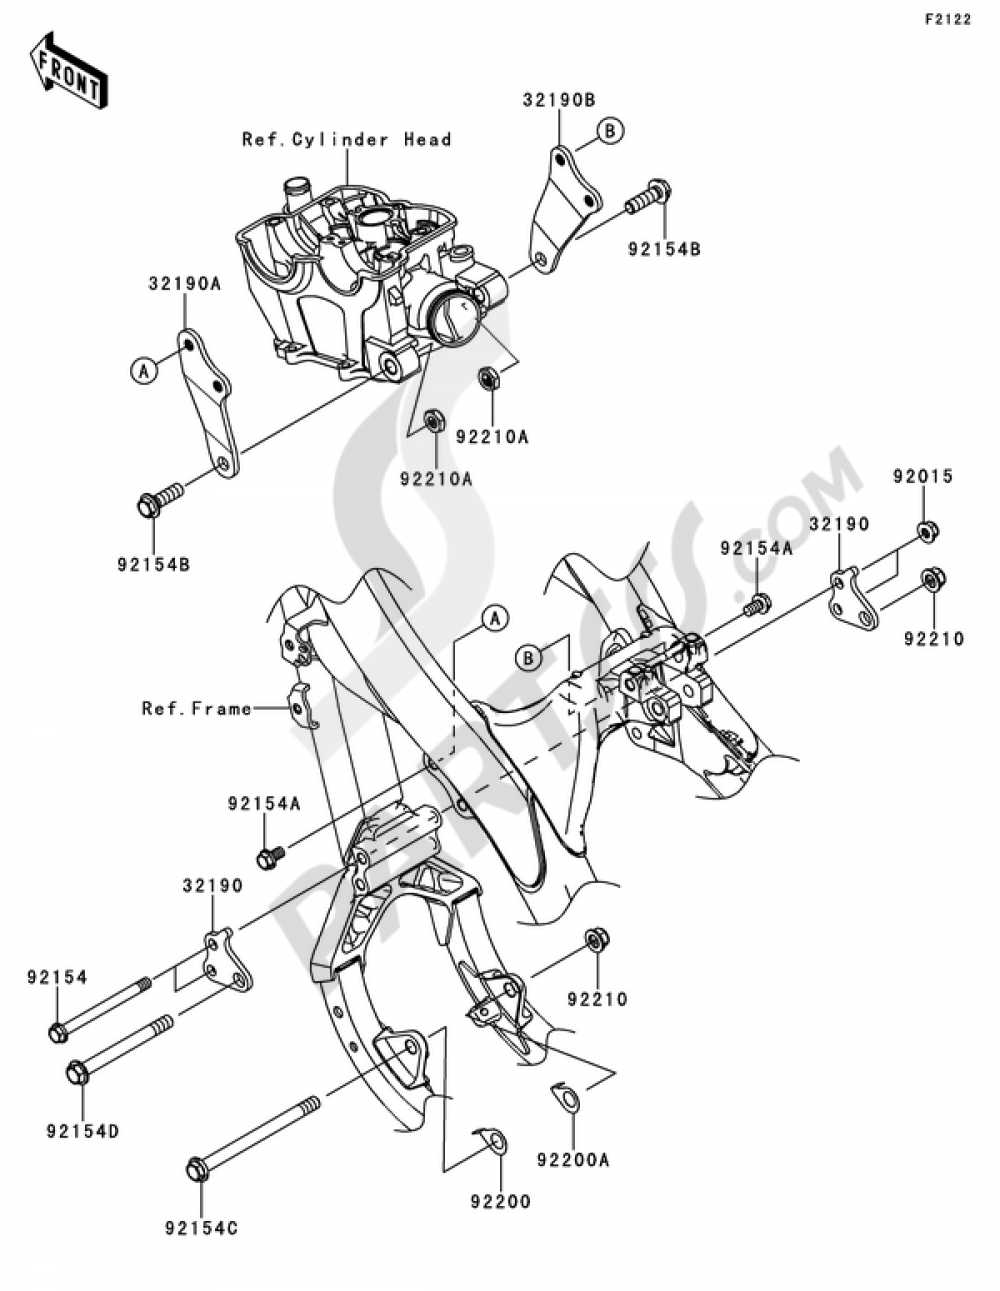 Engine Mount Kawasaki Kx250f 2012 Wiring Diagram